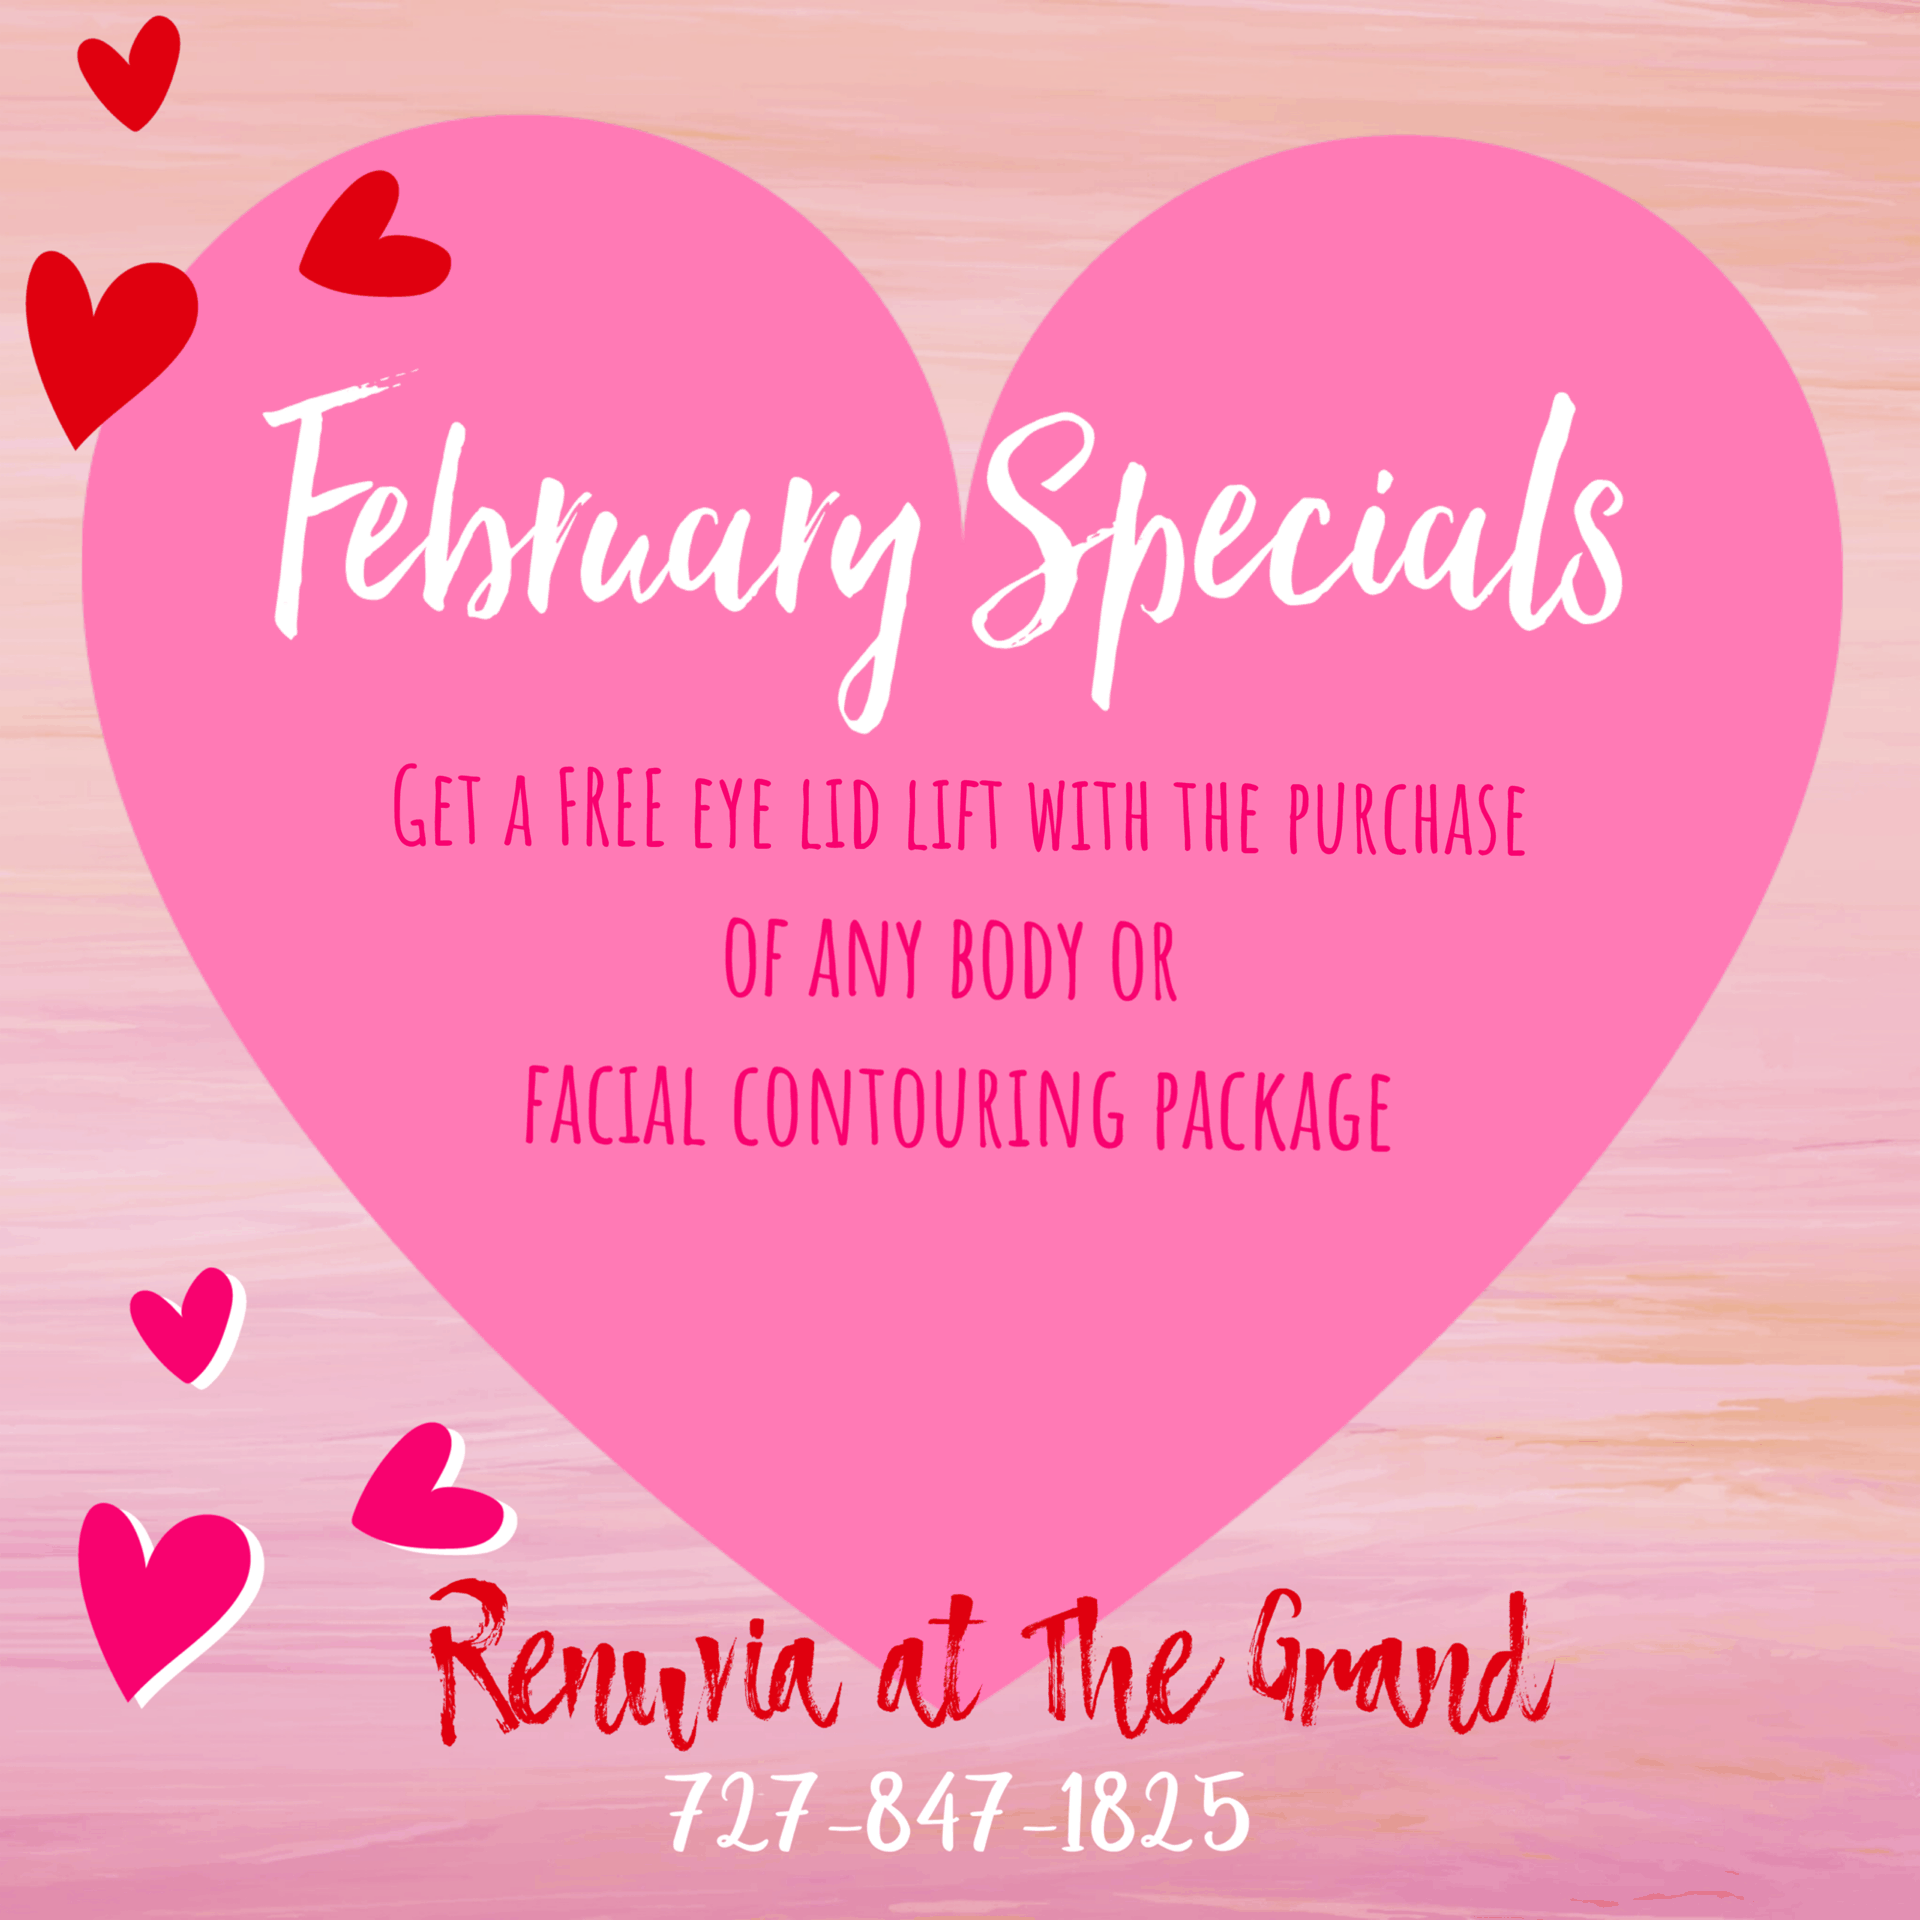 Renuvia at The Grand February Specials